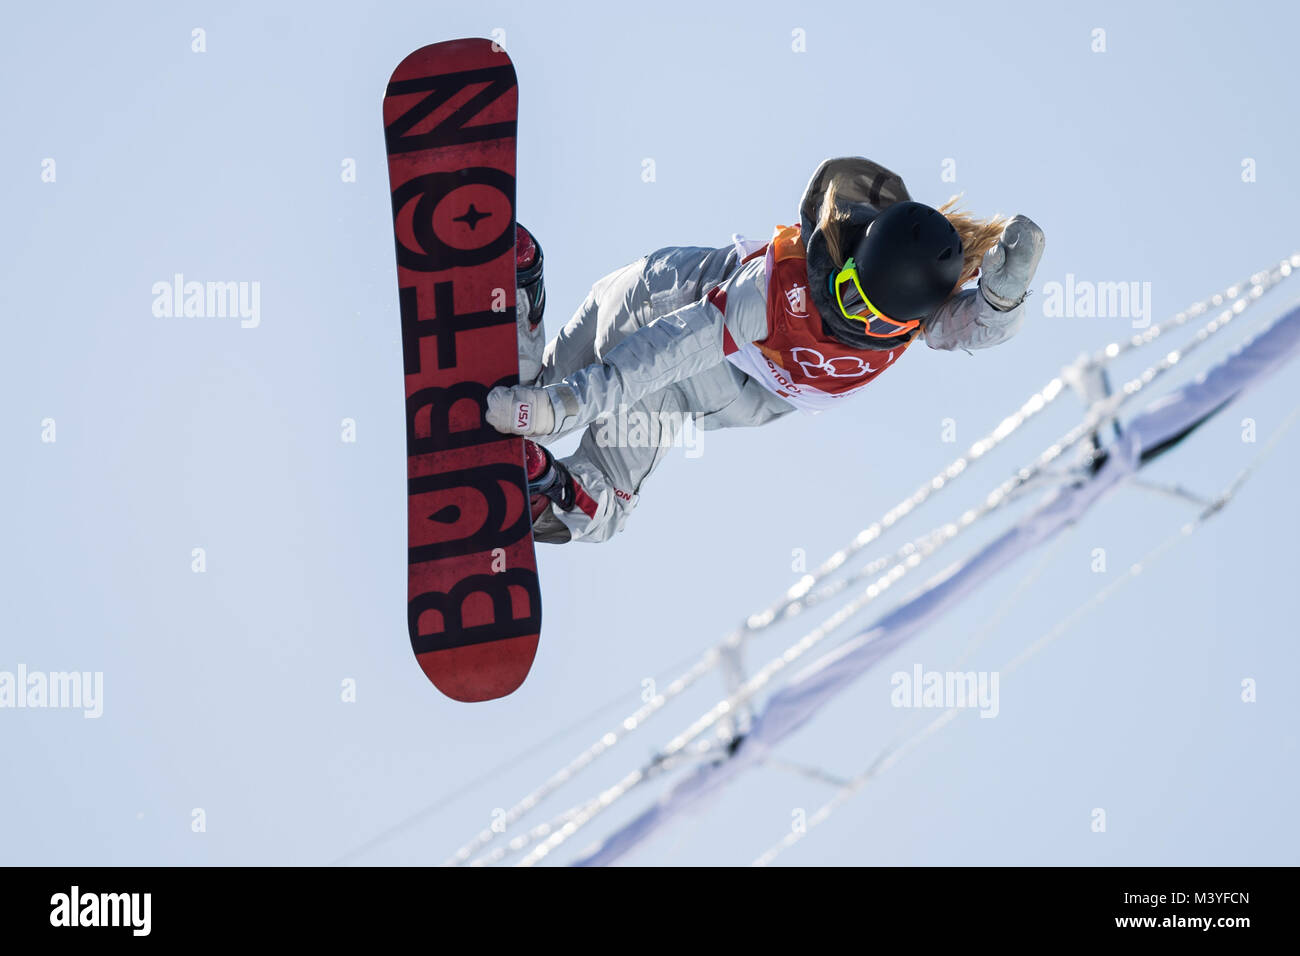 Pyeongchang, South Korea. 13th Feb, 2018. Chloe Kim of the U.S. competes during ladies' halfpipe finals of snowboard - Stock Image